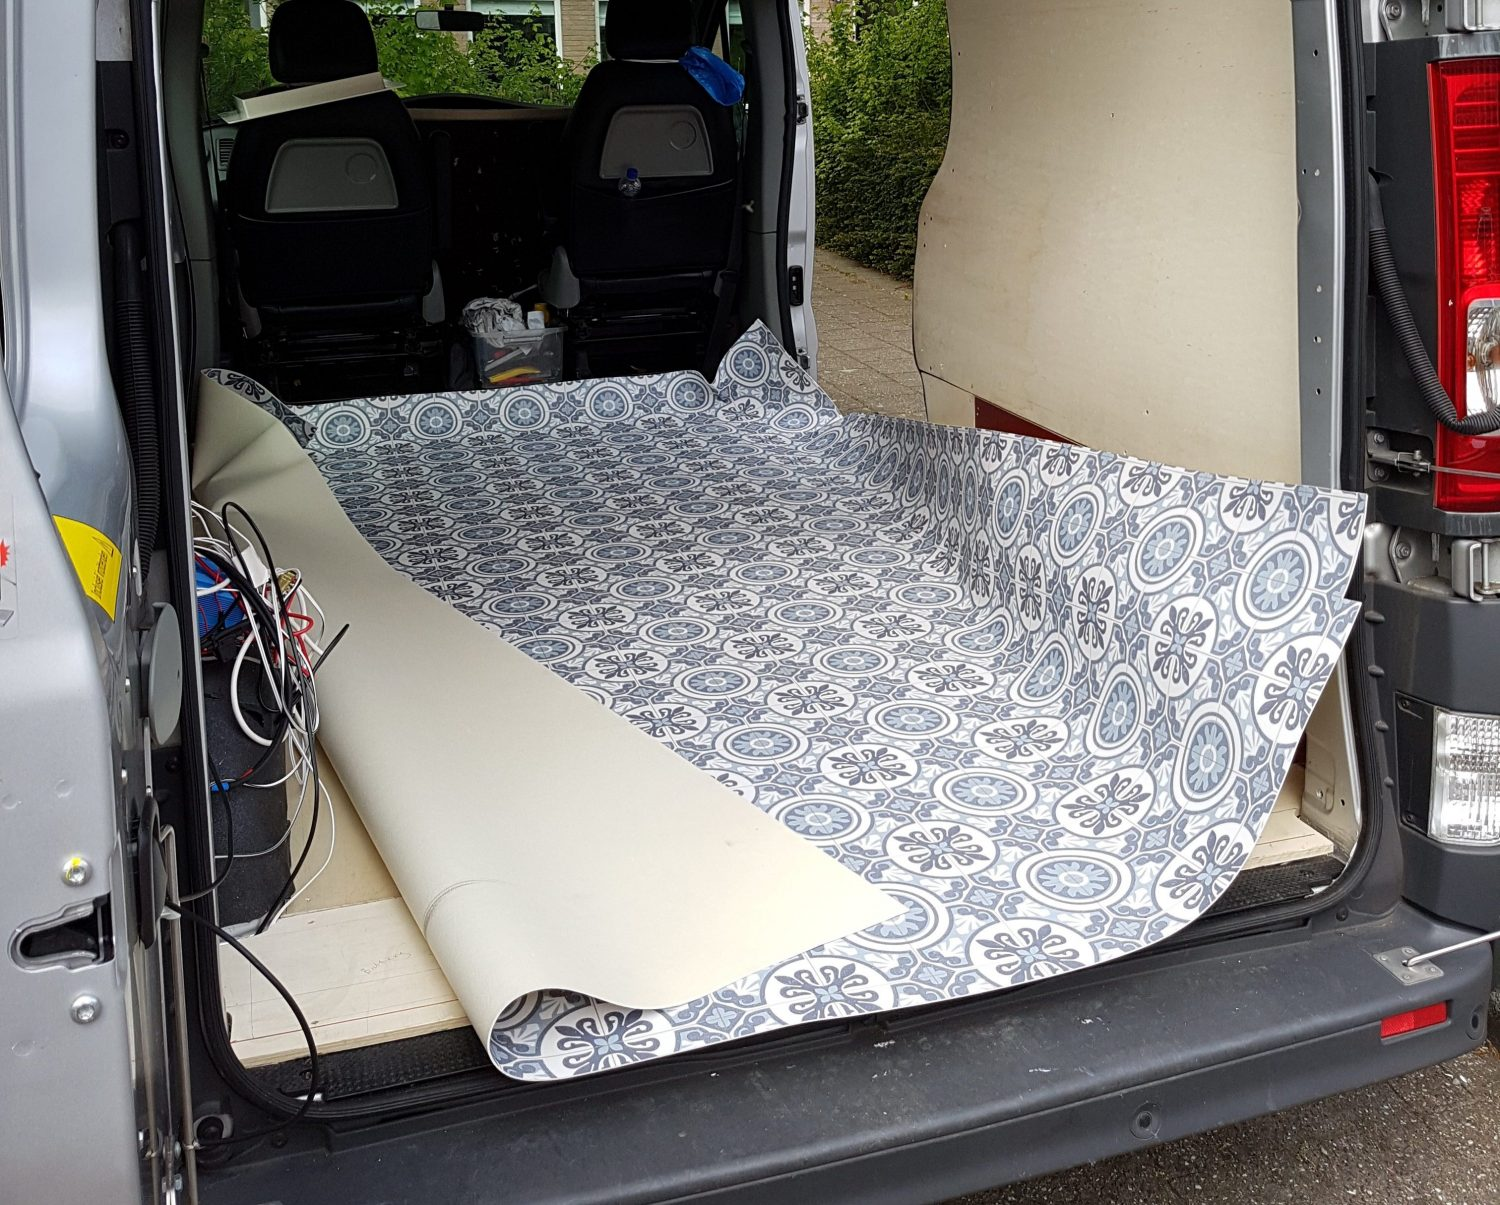 The Floor, Ceiling and Walls – DIY Renault Trafic Campervan Conversion Part 3